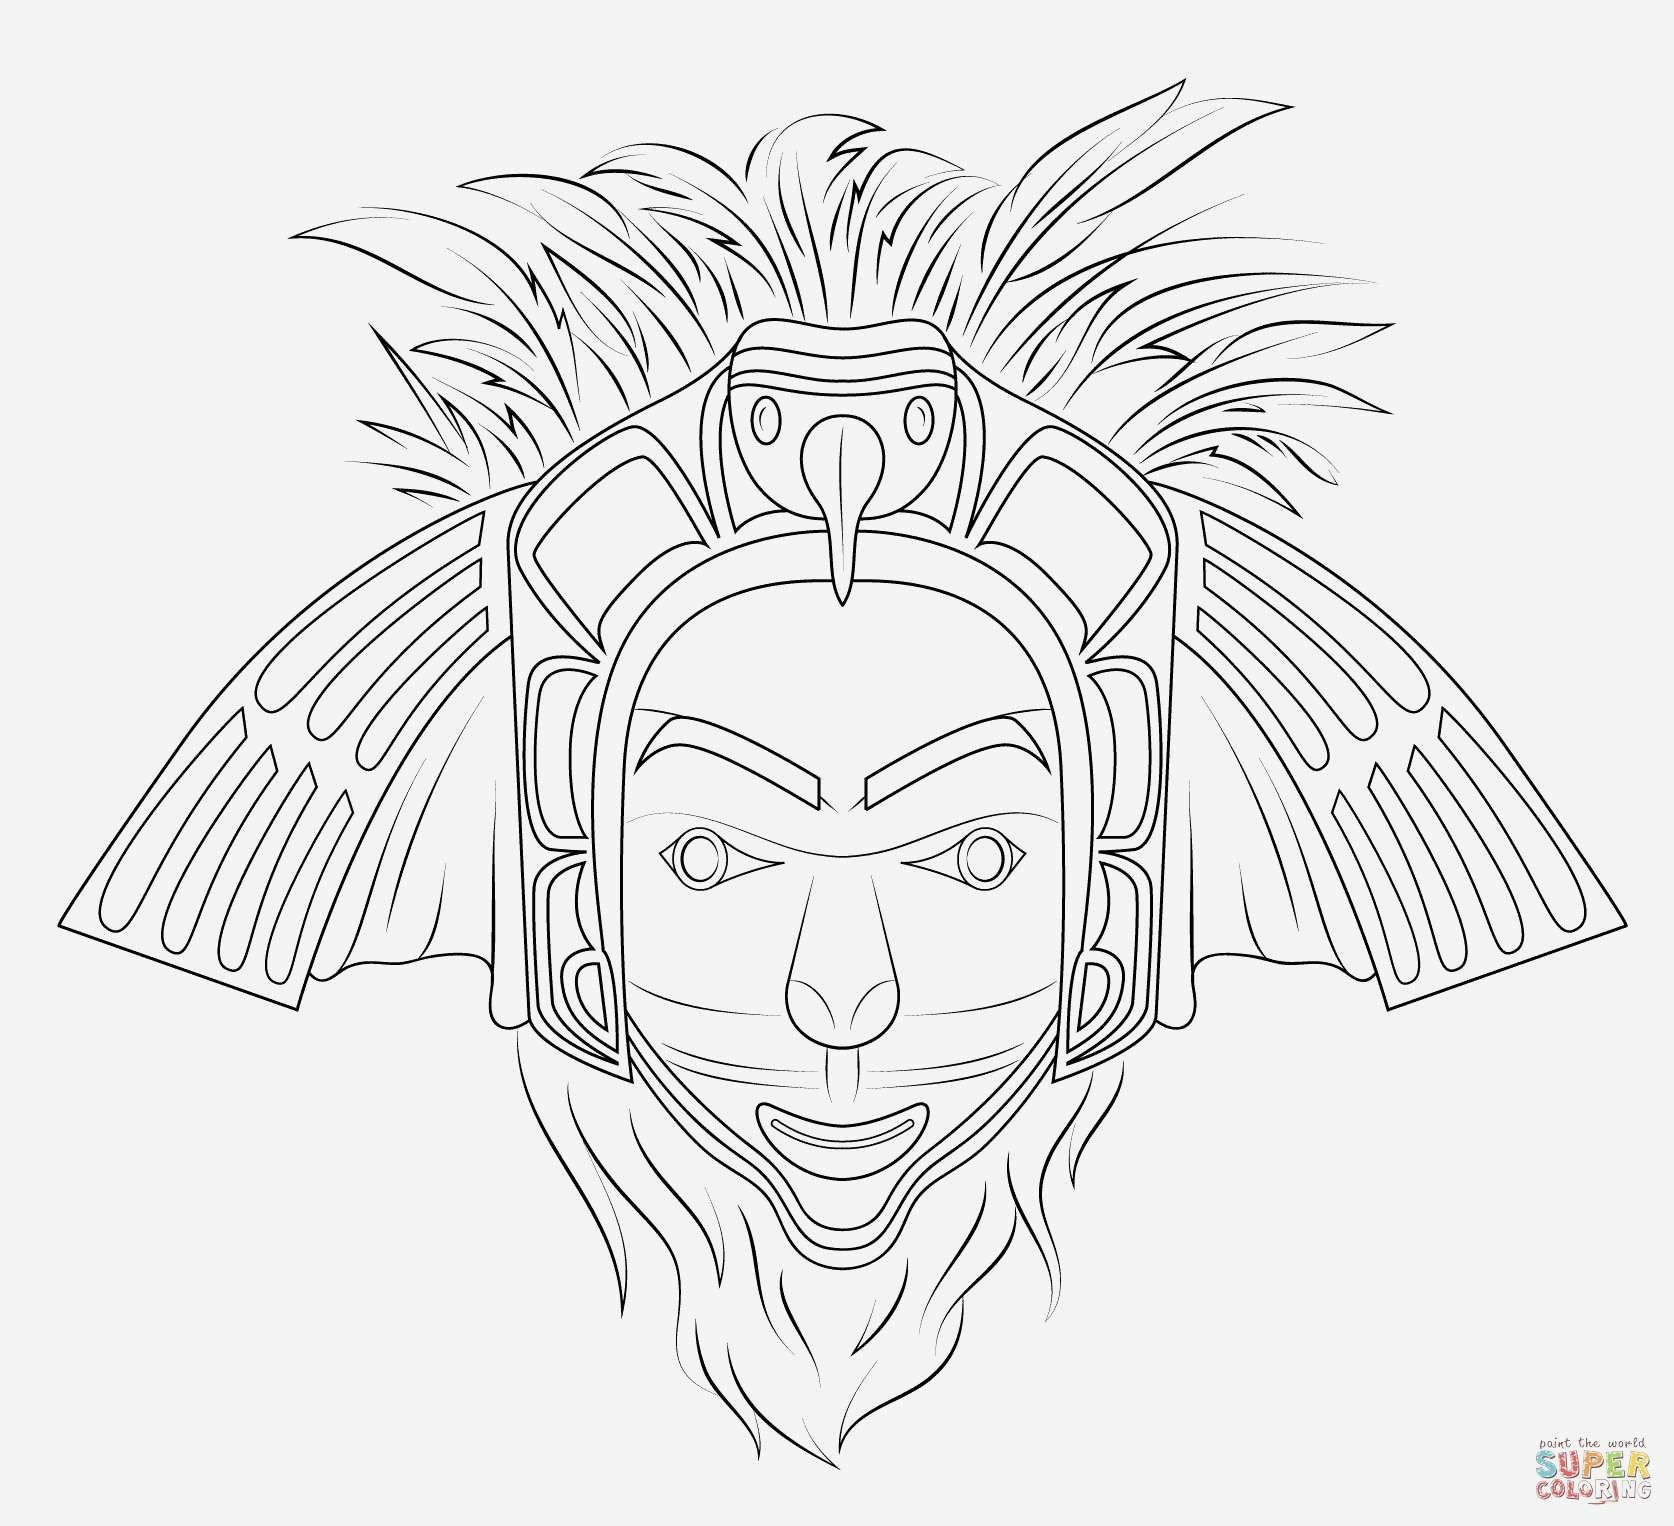 patriotic printable coloring pages Collection-Eagle Coloring Pages Download and Print for Free Patriotic Coloring Pages Best 20 New Eagle Coloring Pages 6-s